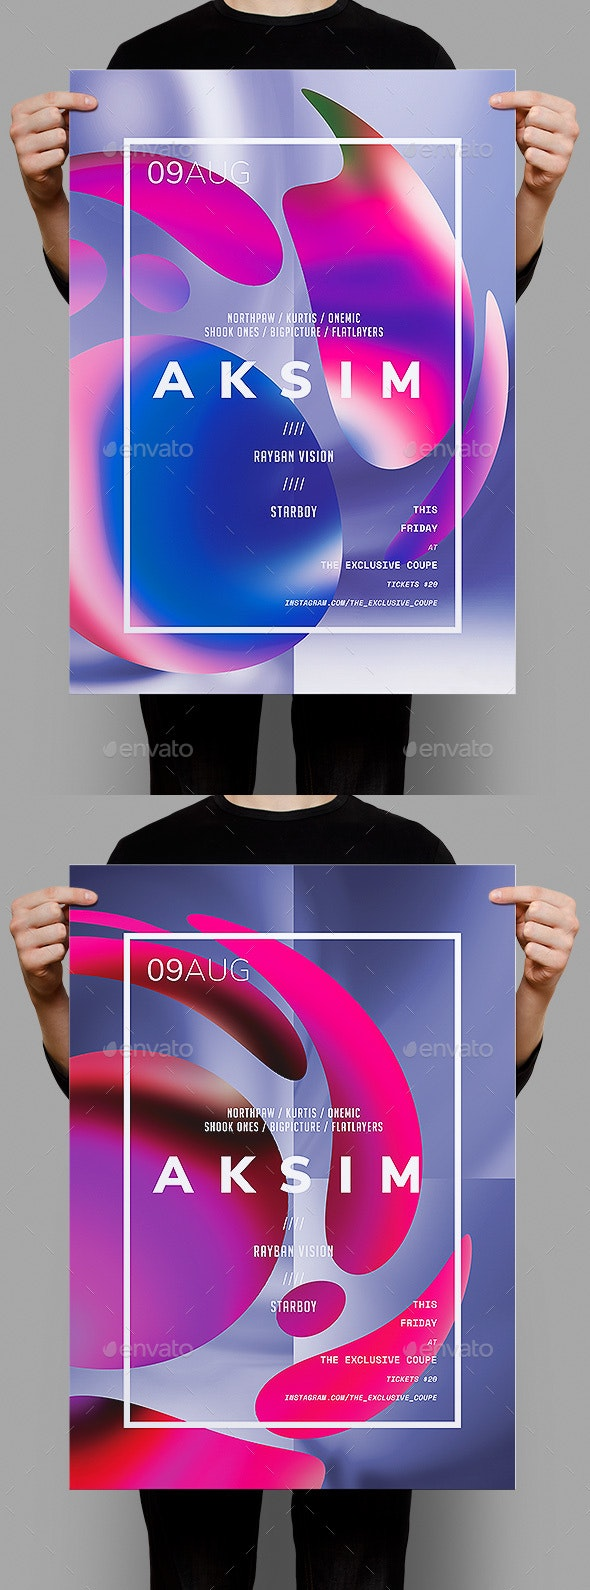 Aksim Poster / Flyer Template - Clubs & Parties Events